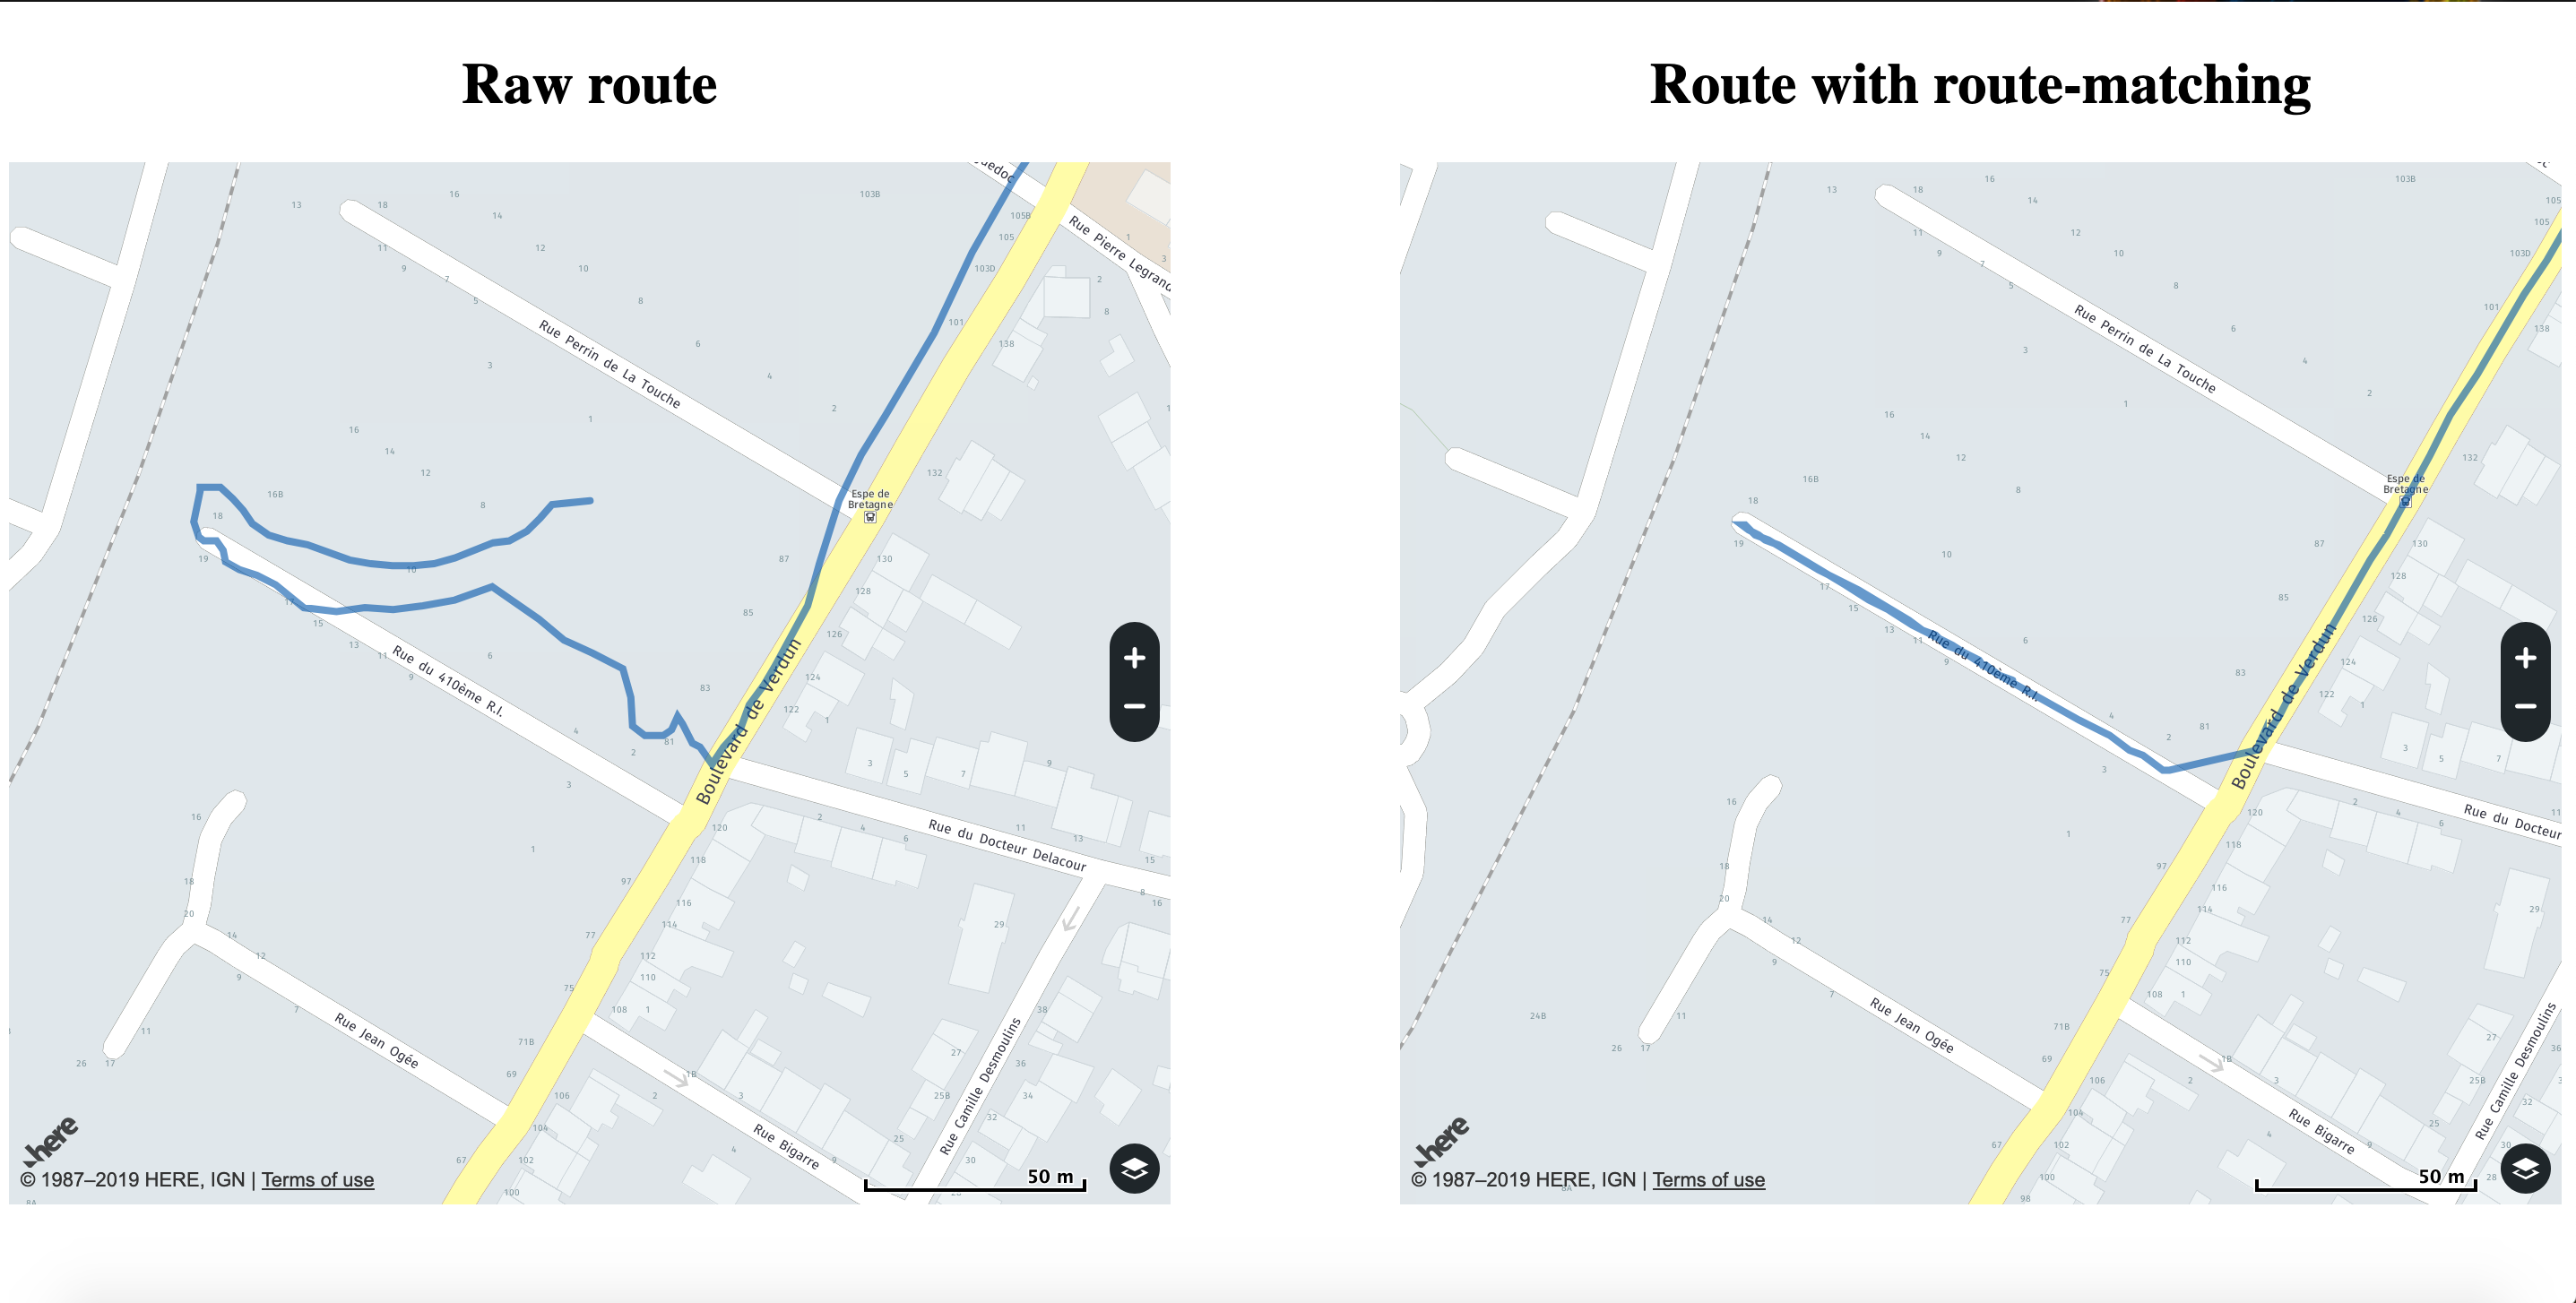 Comparison of raw route with the matched route